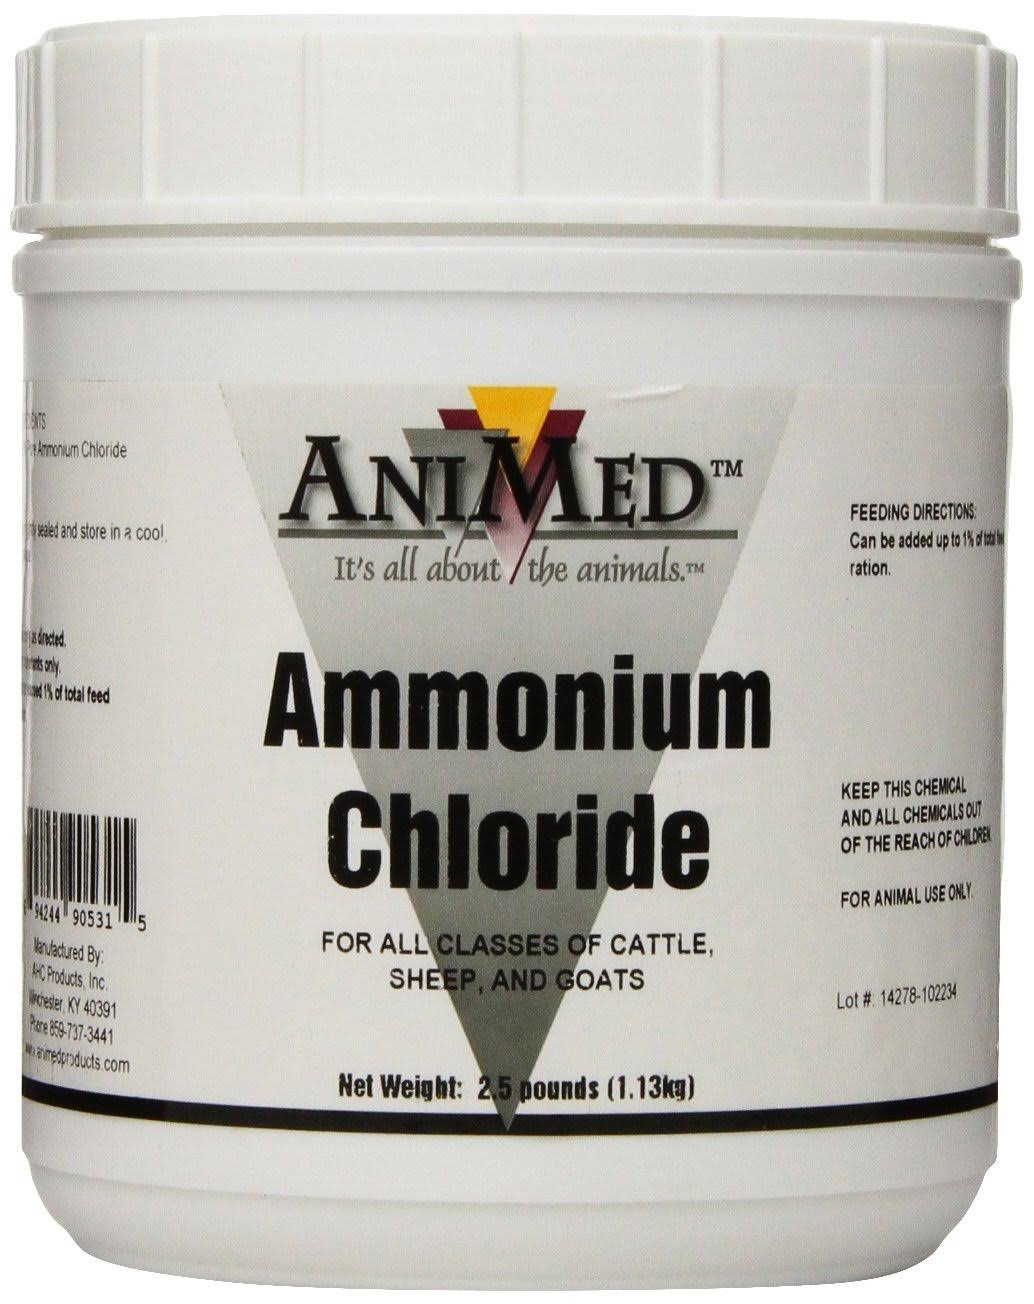 AniMed Ammonium Chloride Powder - 2.5lbs